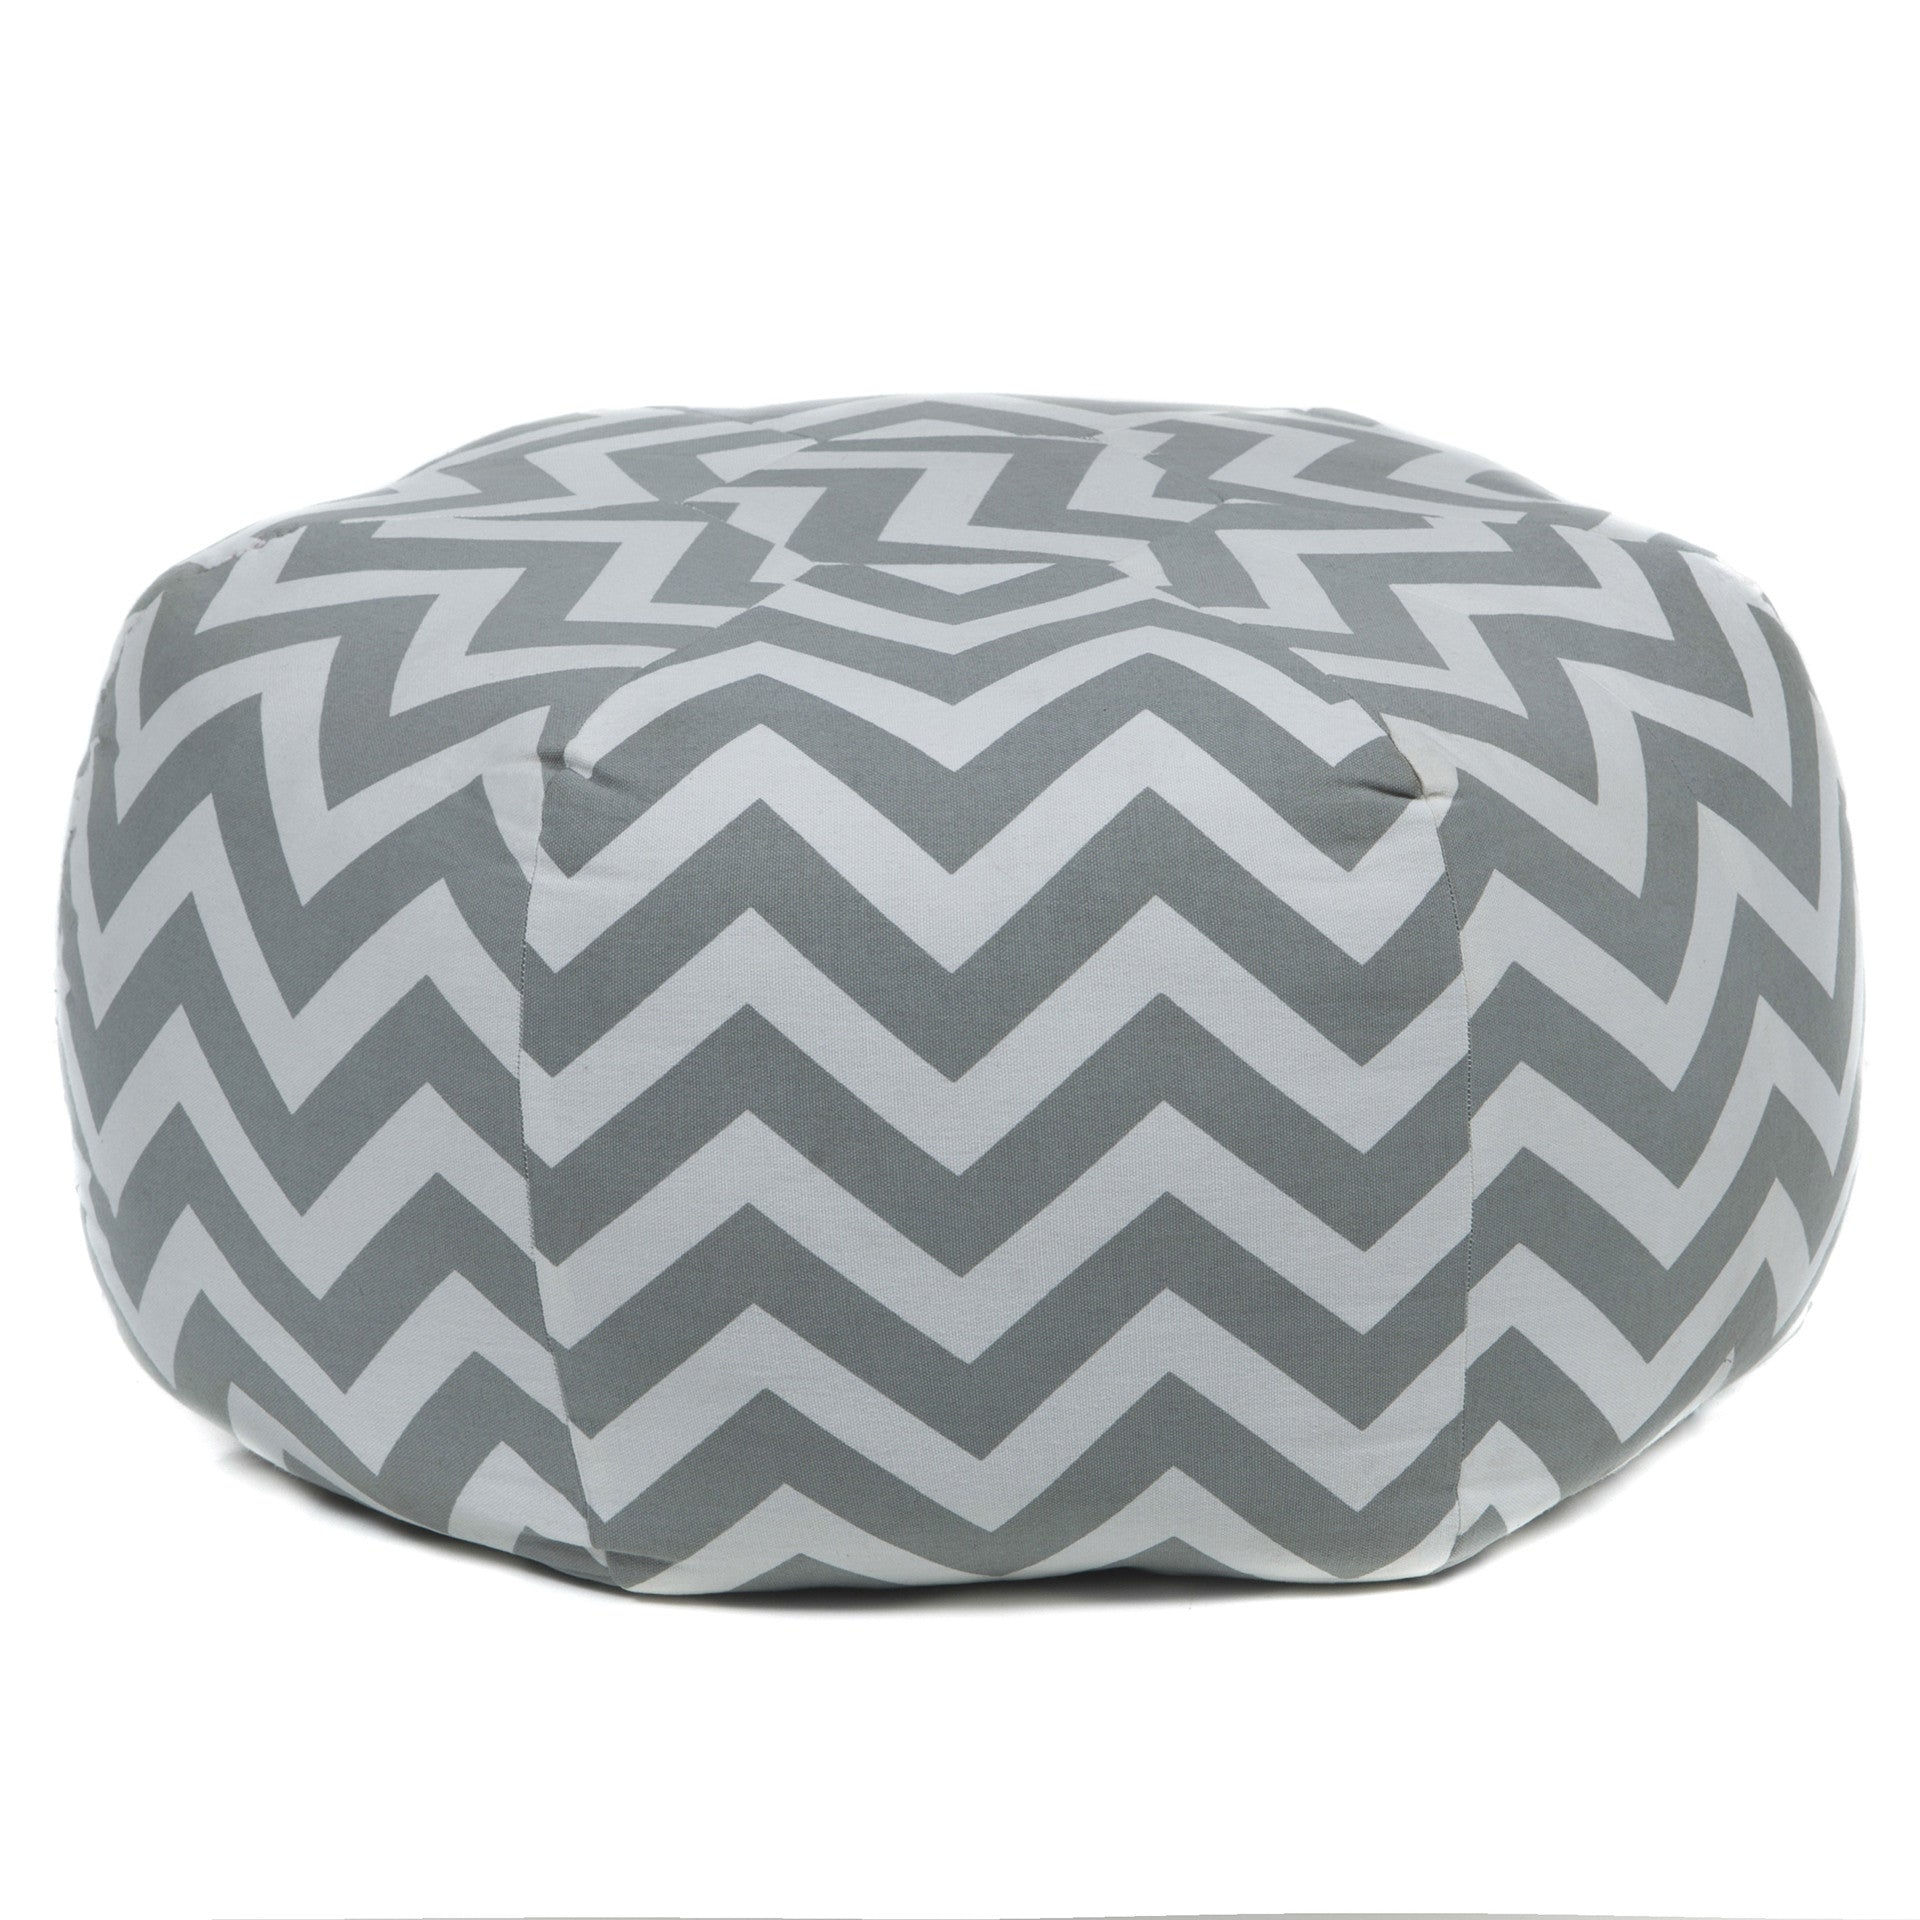 Pouf in Grey & Cream design by Chandra rugs